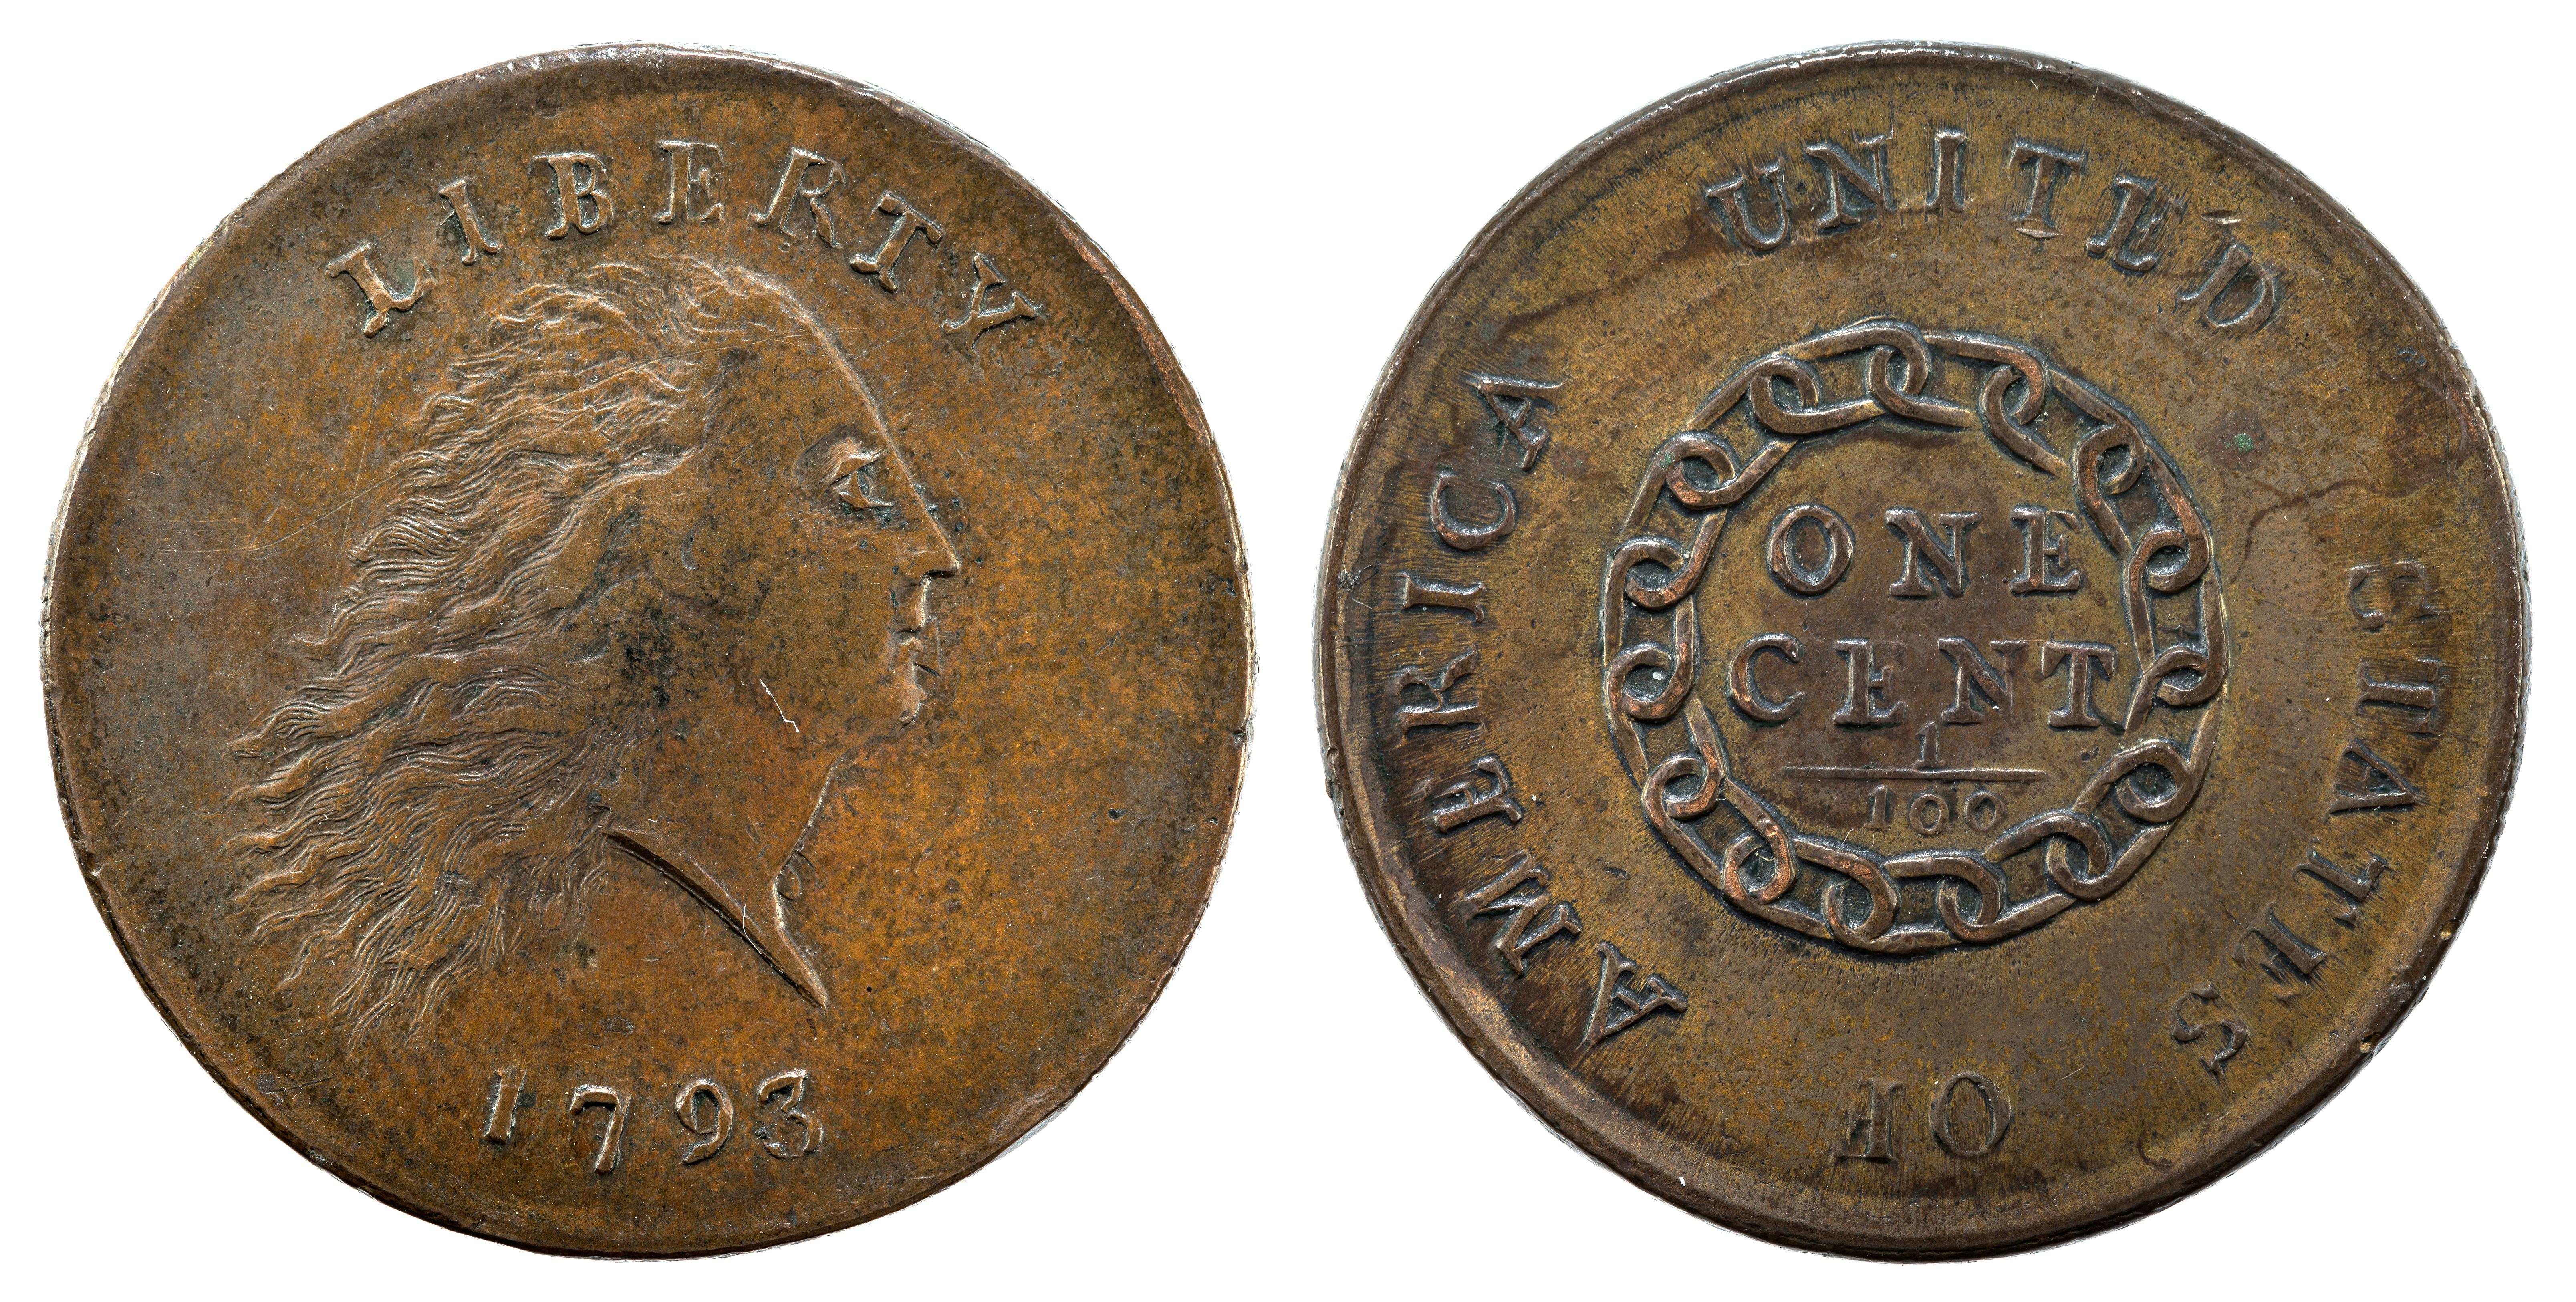 What is penny History of the origin and disappearance of this coin 82